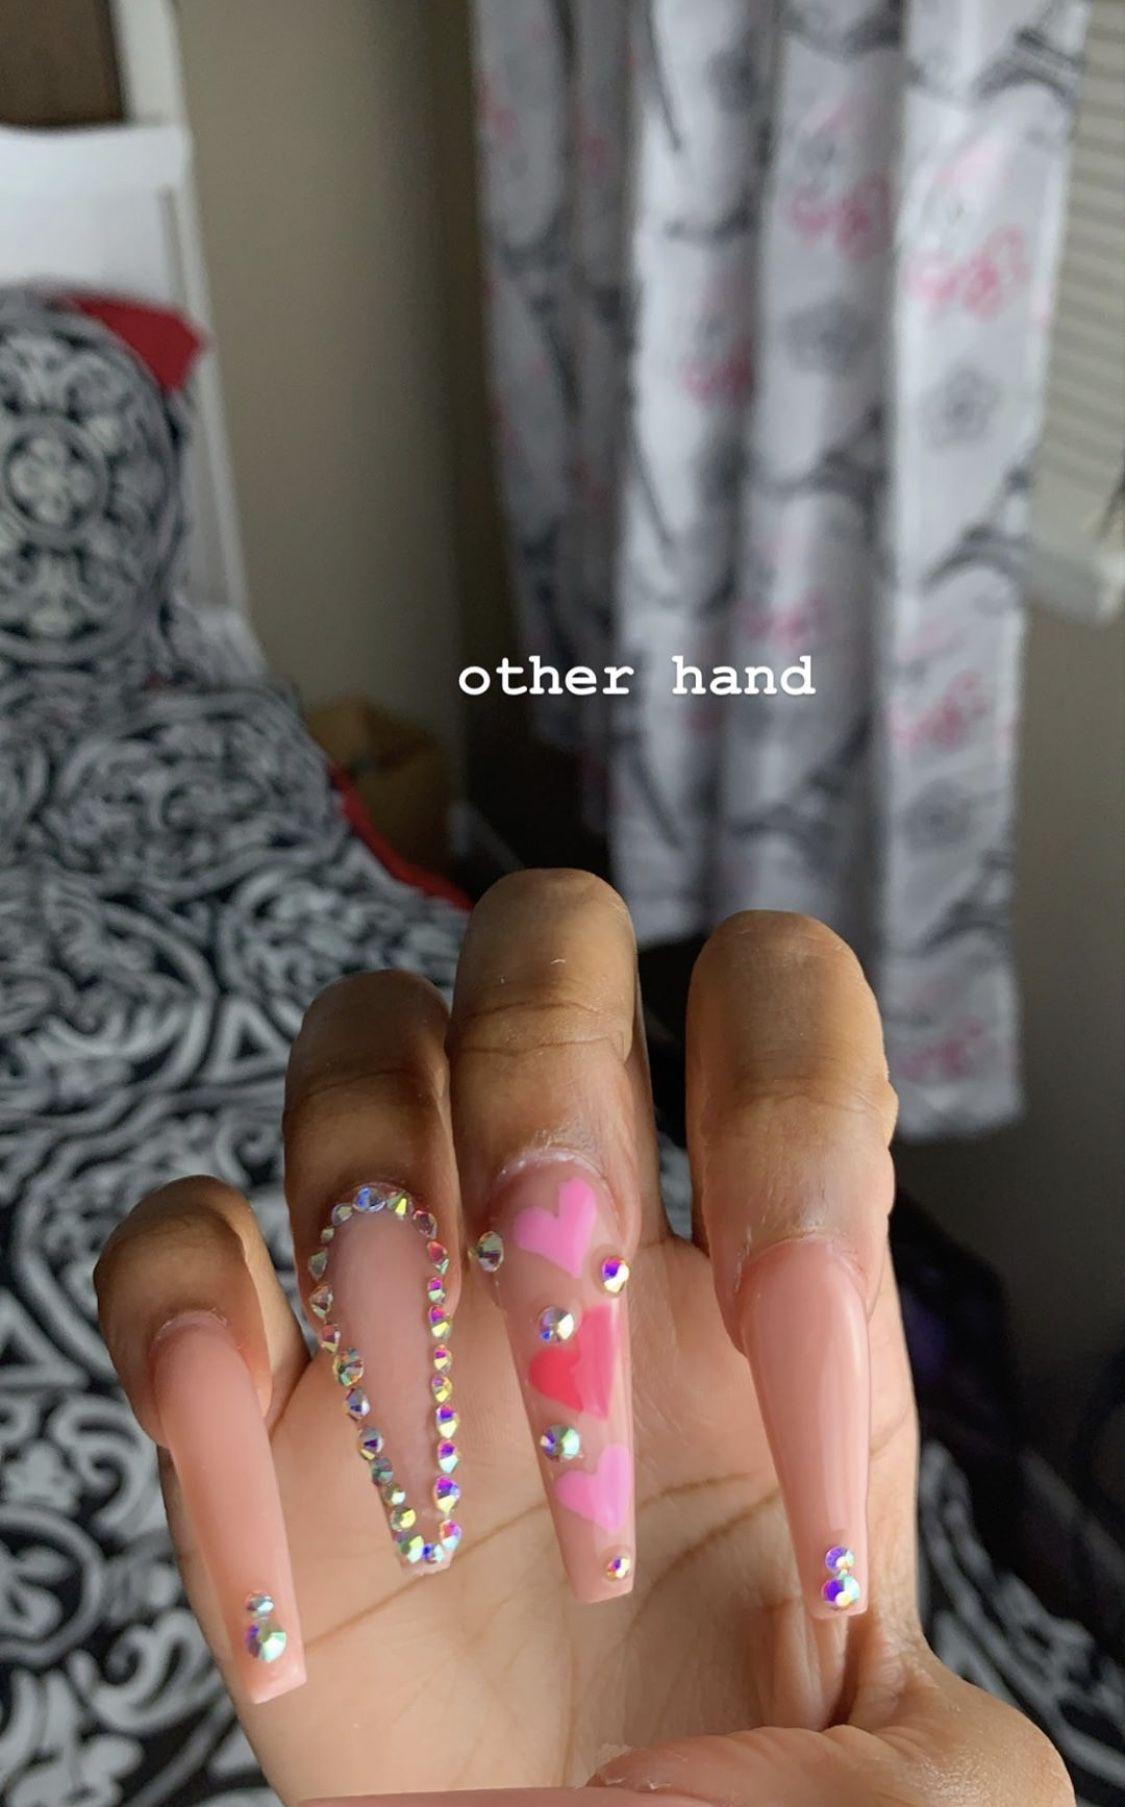 Pin By Briiiii On Nails Nailssss In 2020 Best Acrylic Nails Long Acrylic Nails Acrilic Nails